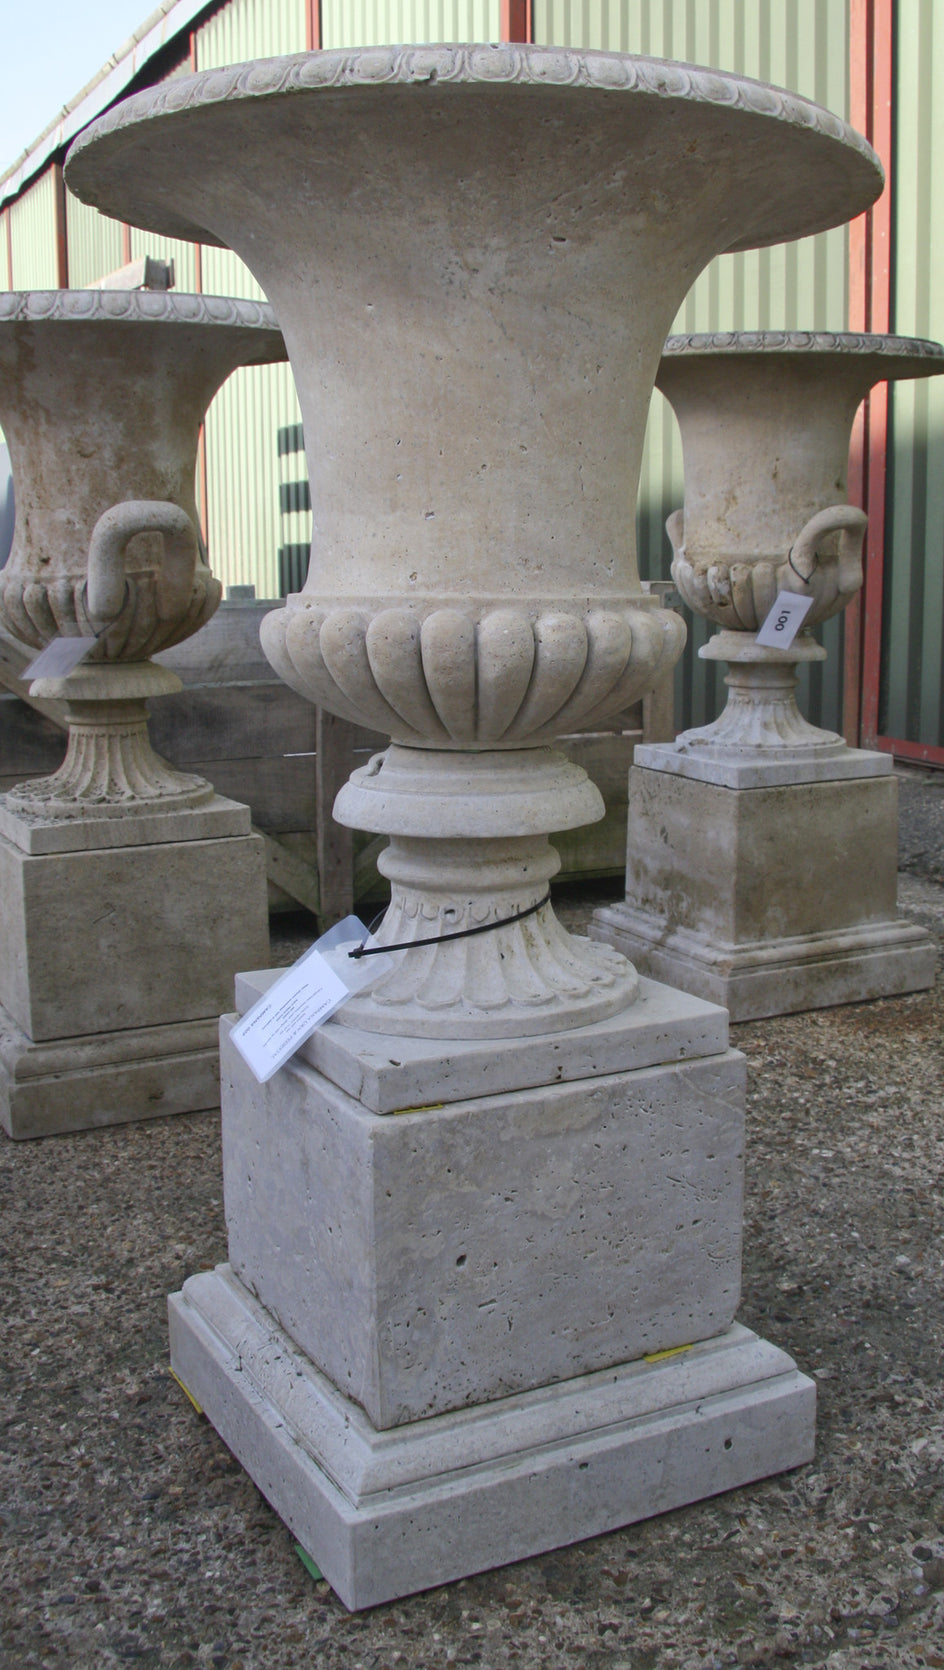 Campana urn & pedestal / travertine 009 - 1142 mm (H)